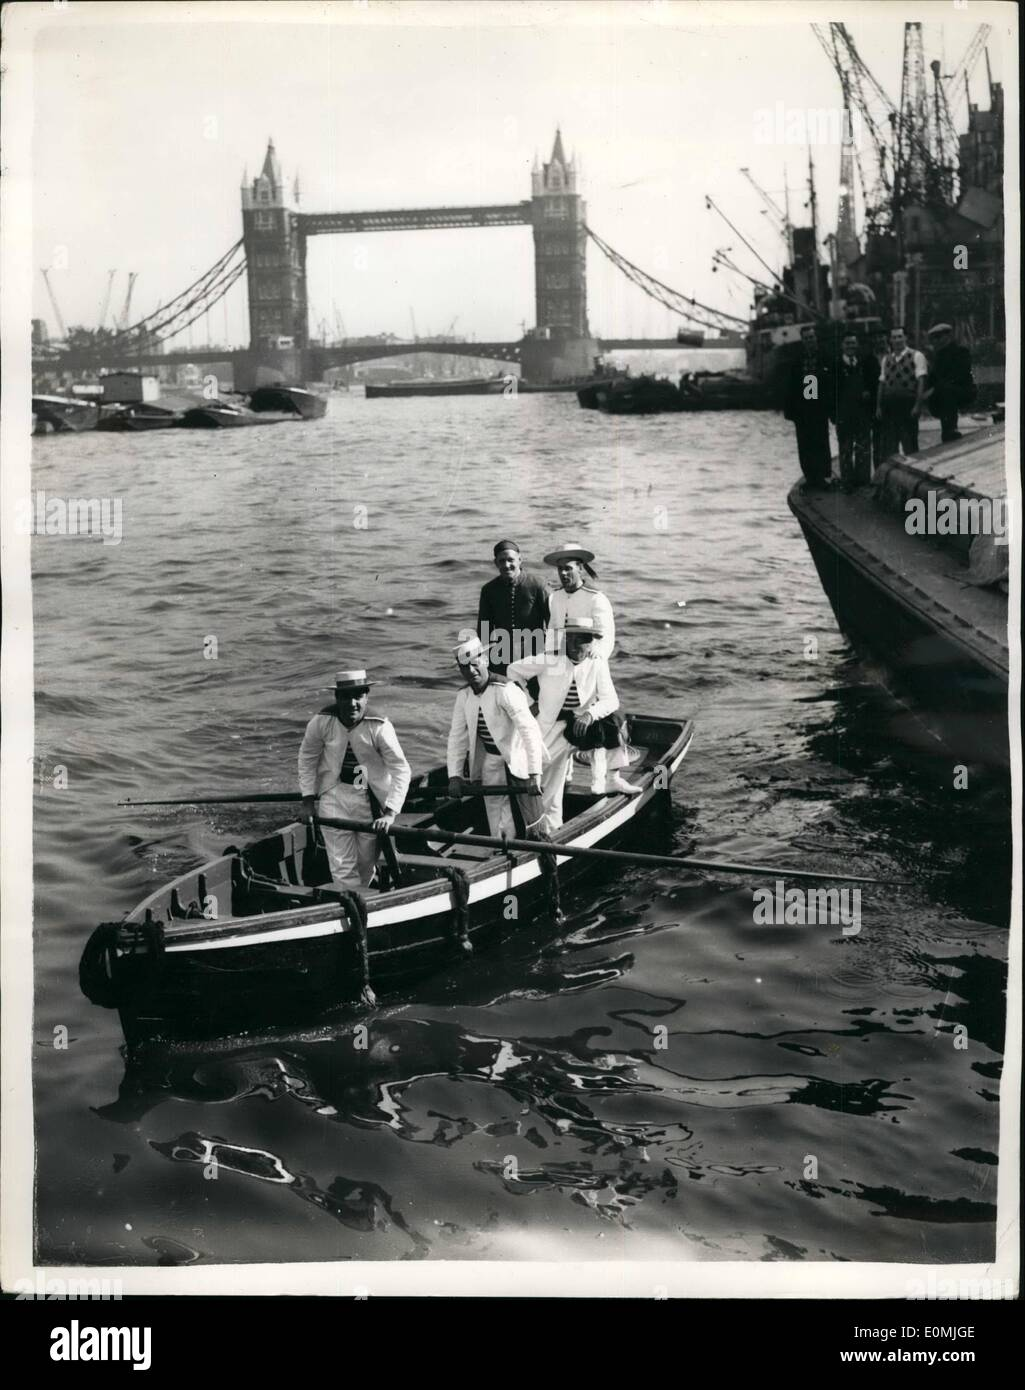 Sep. 09, 1955 - Venetian Condoliers in London: The party of four of Venice's most famous condeliers, who arrived in London last - Stock Image